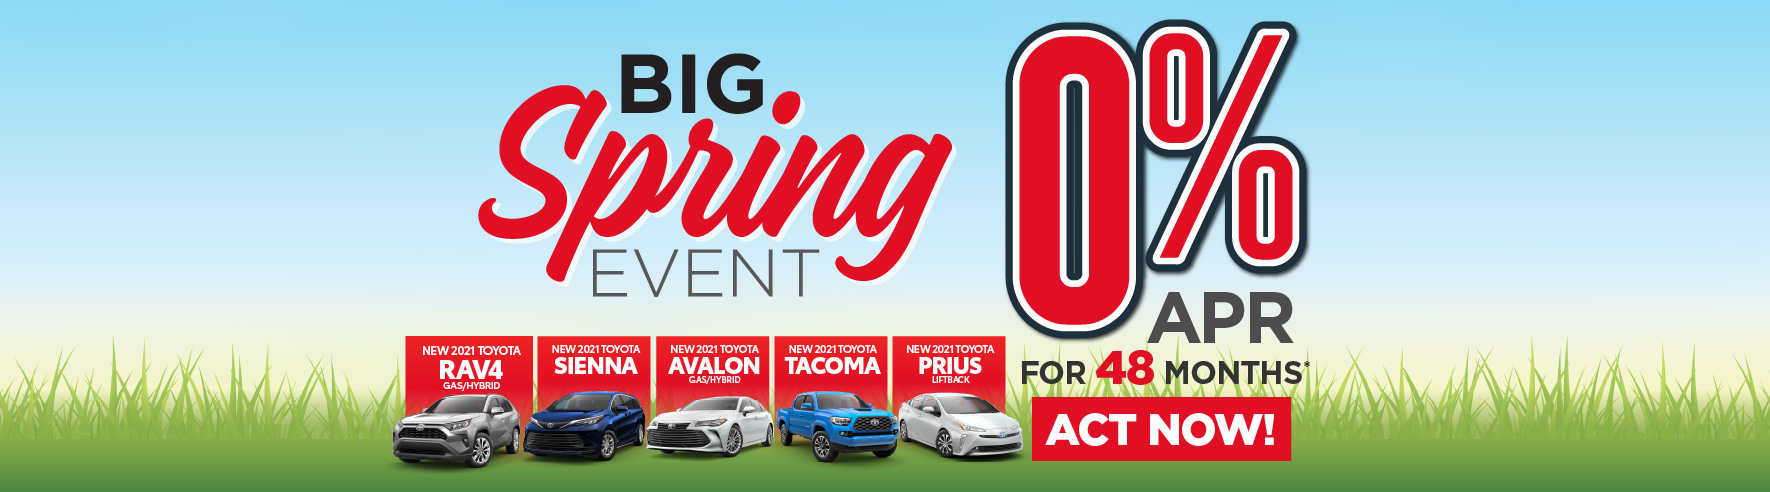 New 2020 Toyota Rav4 and Camry 0% APR for 60 months - ACT NOW